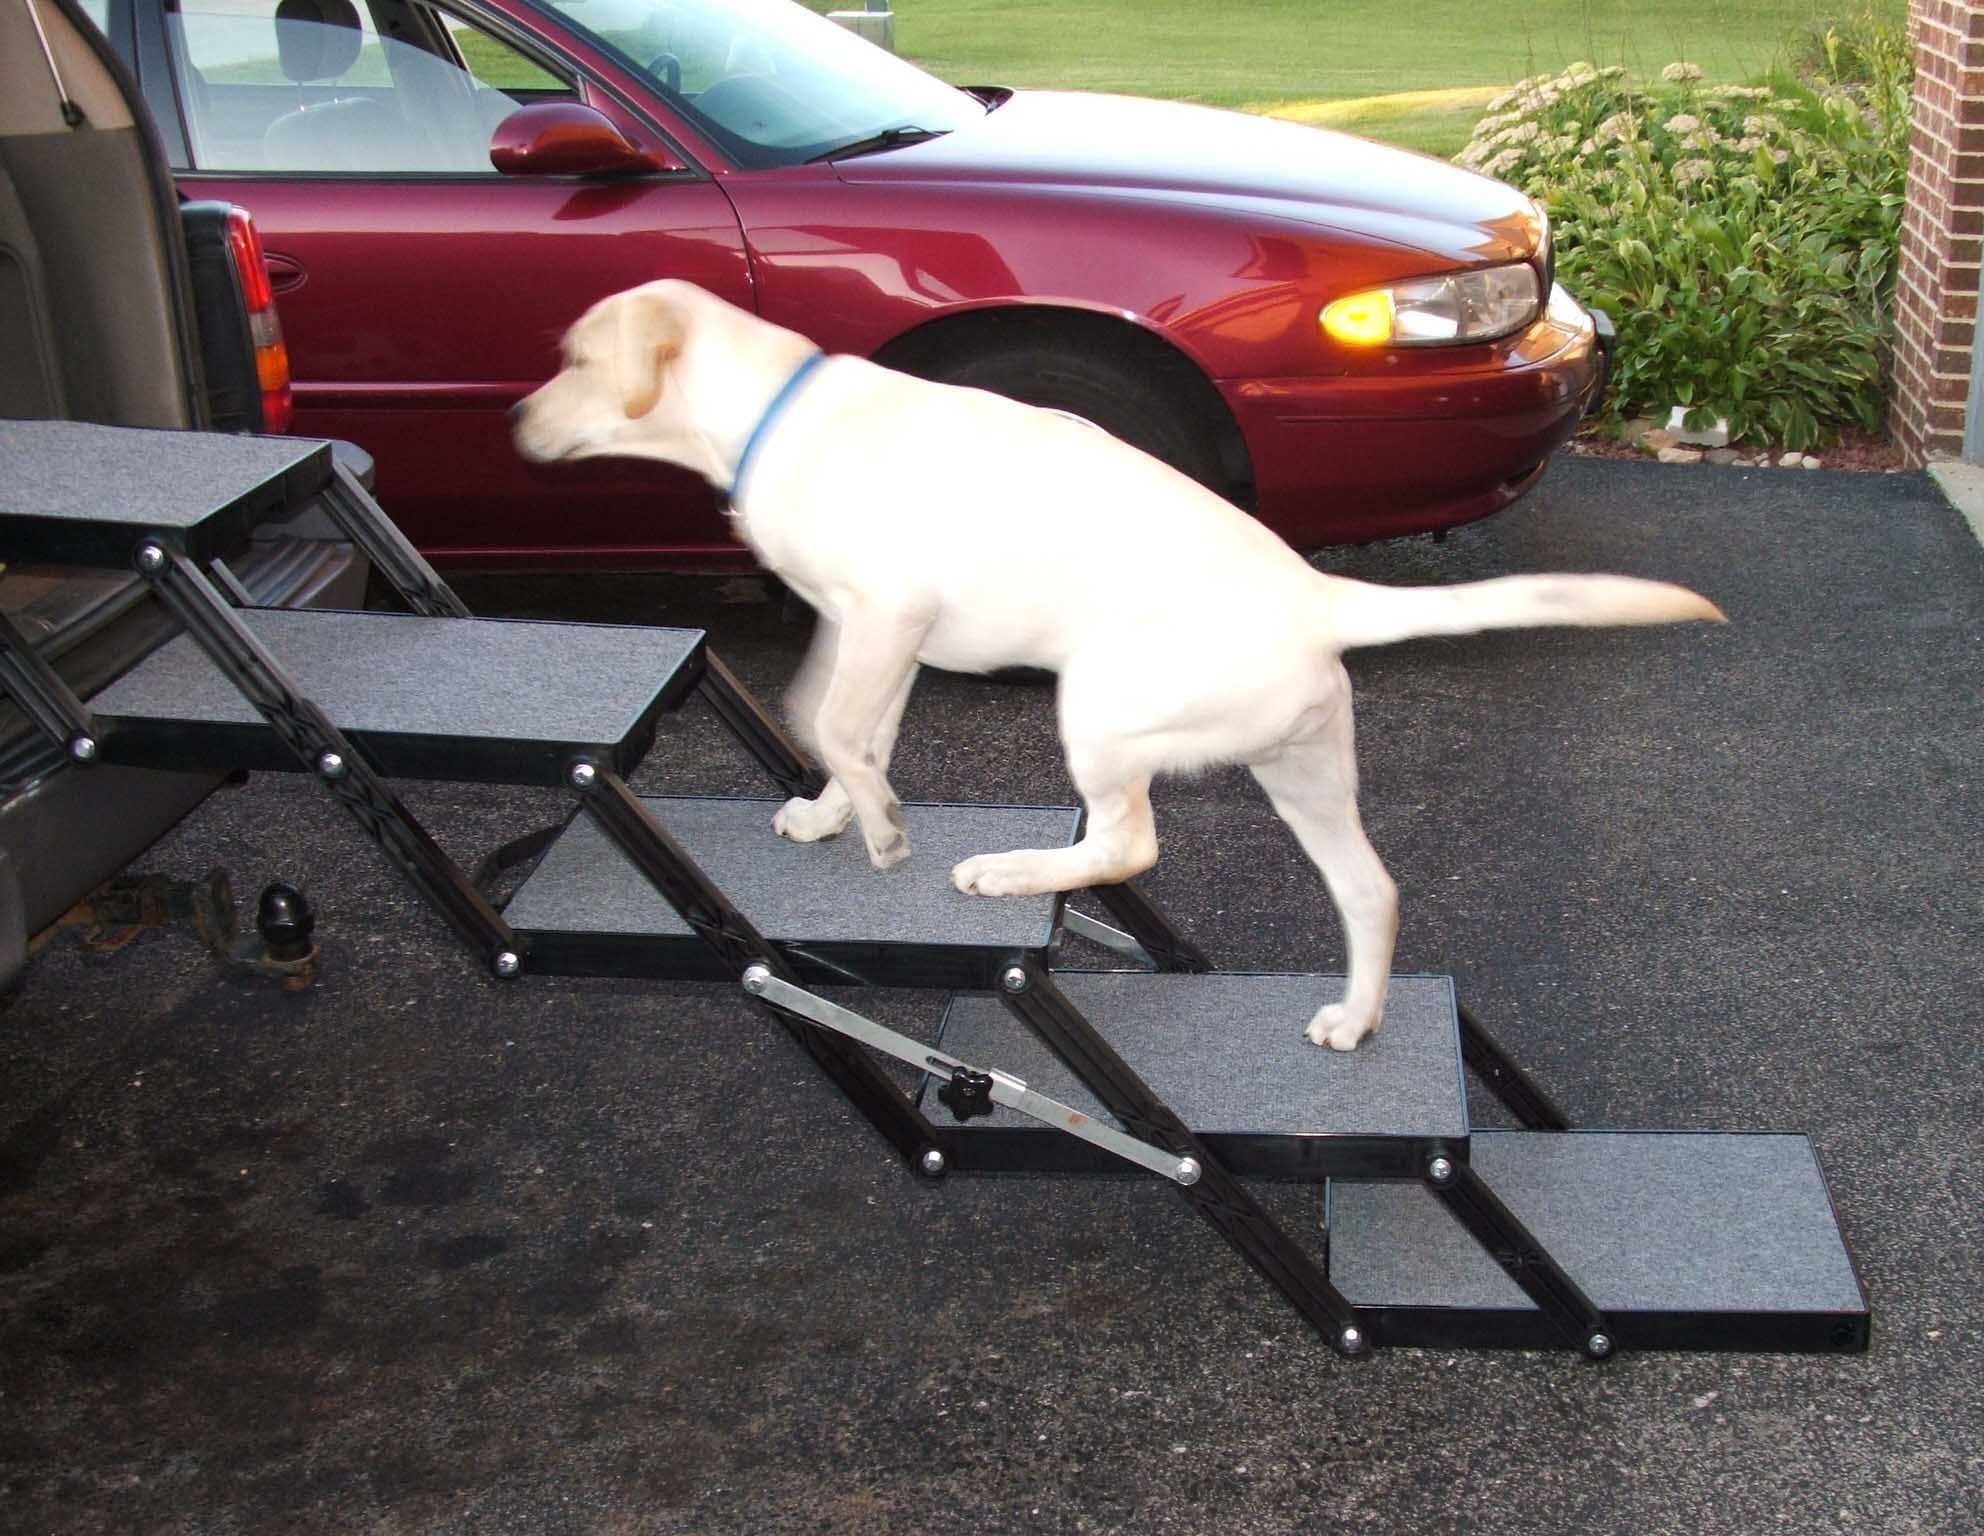 Pet Loader Dog Stairs - Light 16'' 5 Step - for Cars, Trucks, SUV's, Tall Beds & Other Elevated Surfaces - Safe - Collapsible, Portable, Easy to Store by Pet Loader